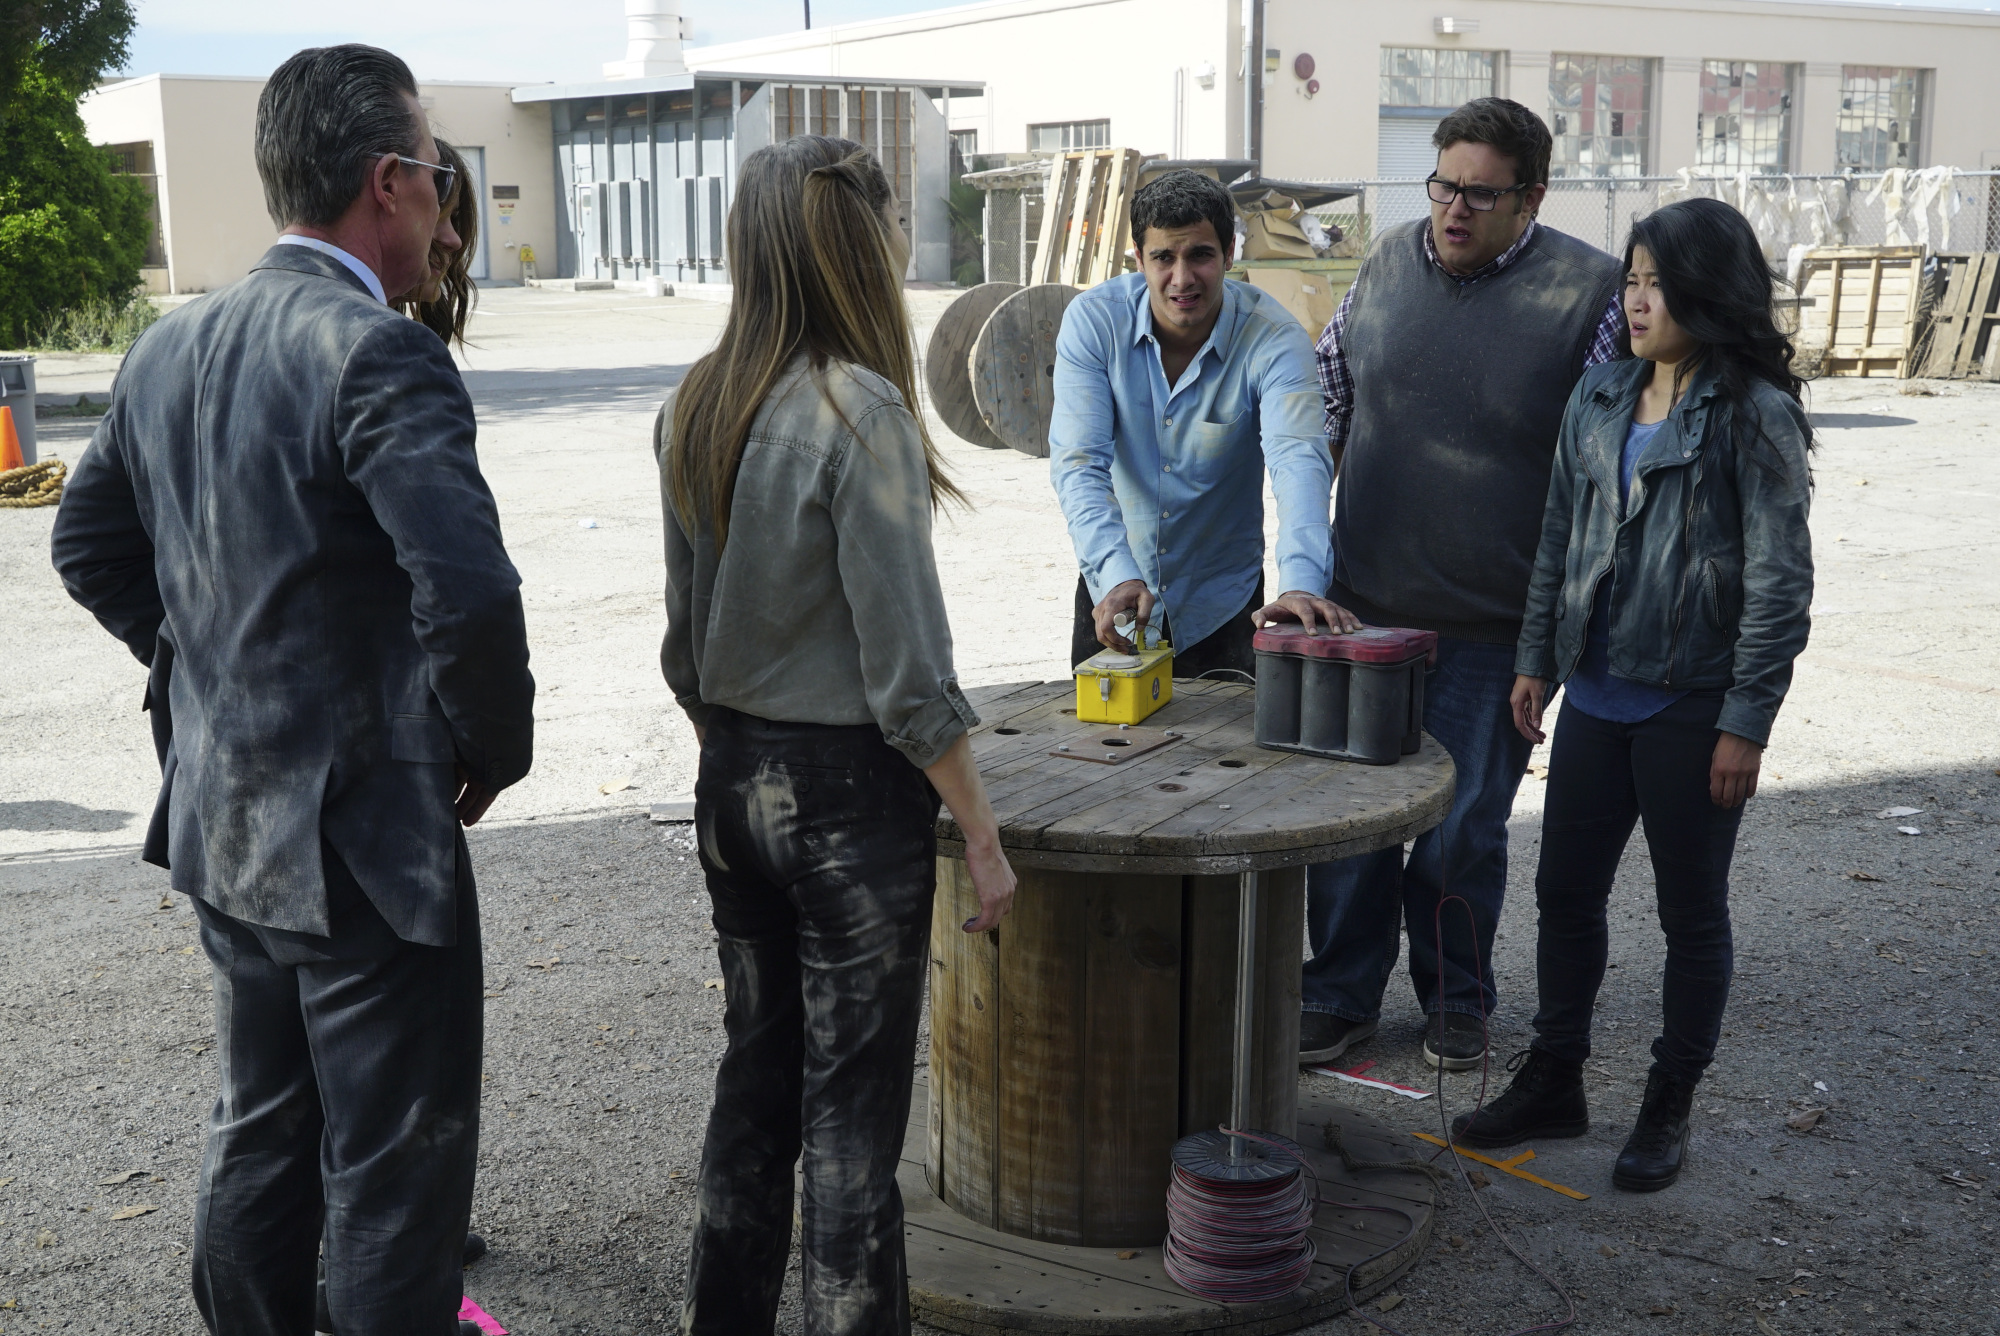 Robert Patrick as Agent Cabe Gallo, Katharine McPhee as Paige Dineen, Kathleen Munroe as Oksana, Elyes Gabel as Walter O'Brien, Ari Stidham as Sylvester Dodd, and Jadyn Wong as Happy Quinn